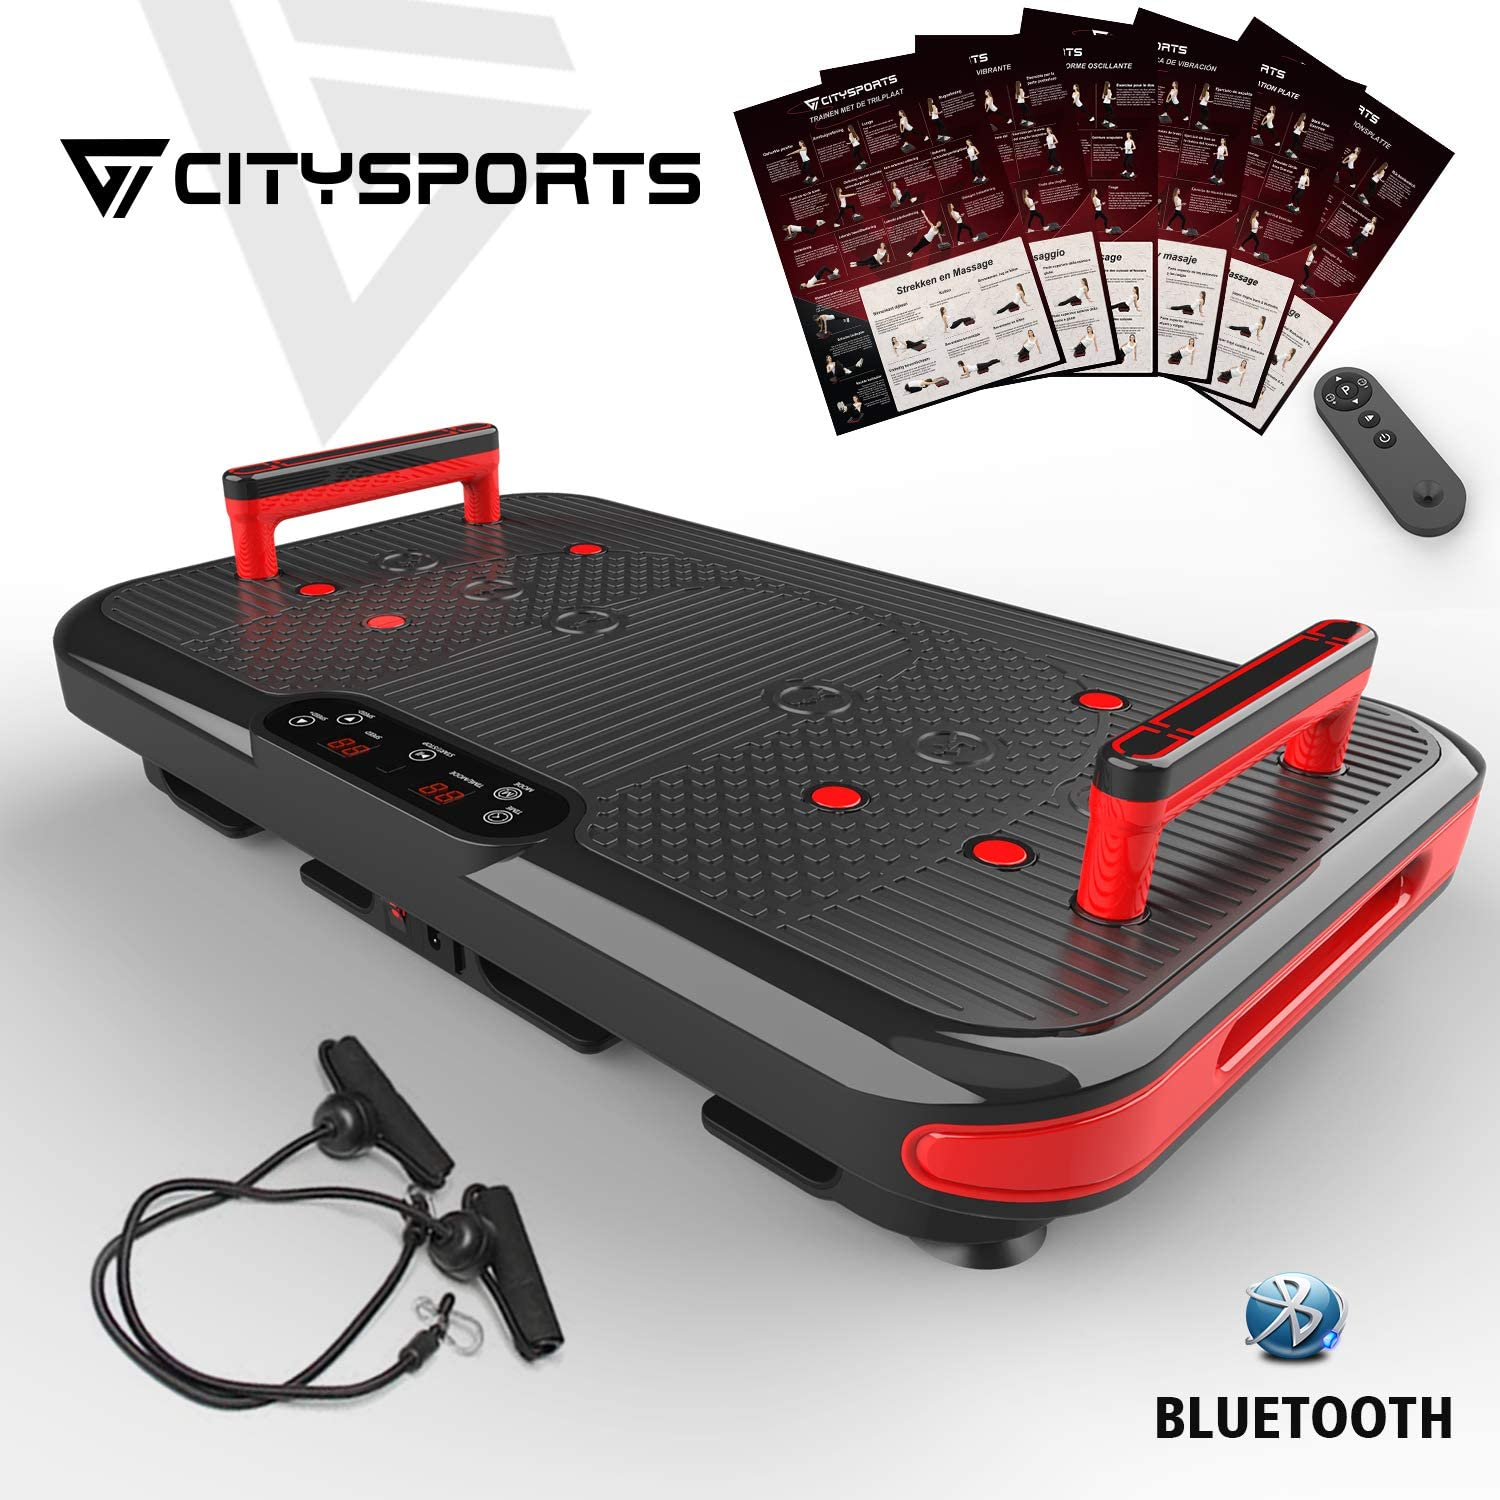 2 Integrated Handles 50 Adjustable Speeds CITYSPORTS Fitness Vibrating Plate CS-600 Bluetooth Vibrating Platform 3 Vibration Modes with Posture and Professional Use Guide